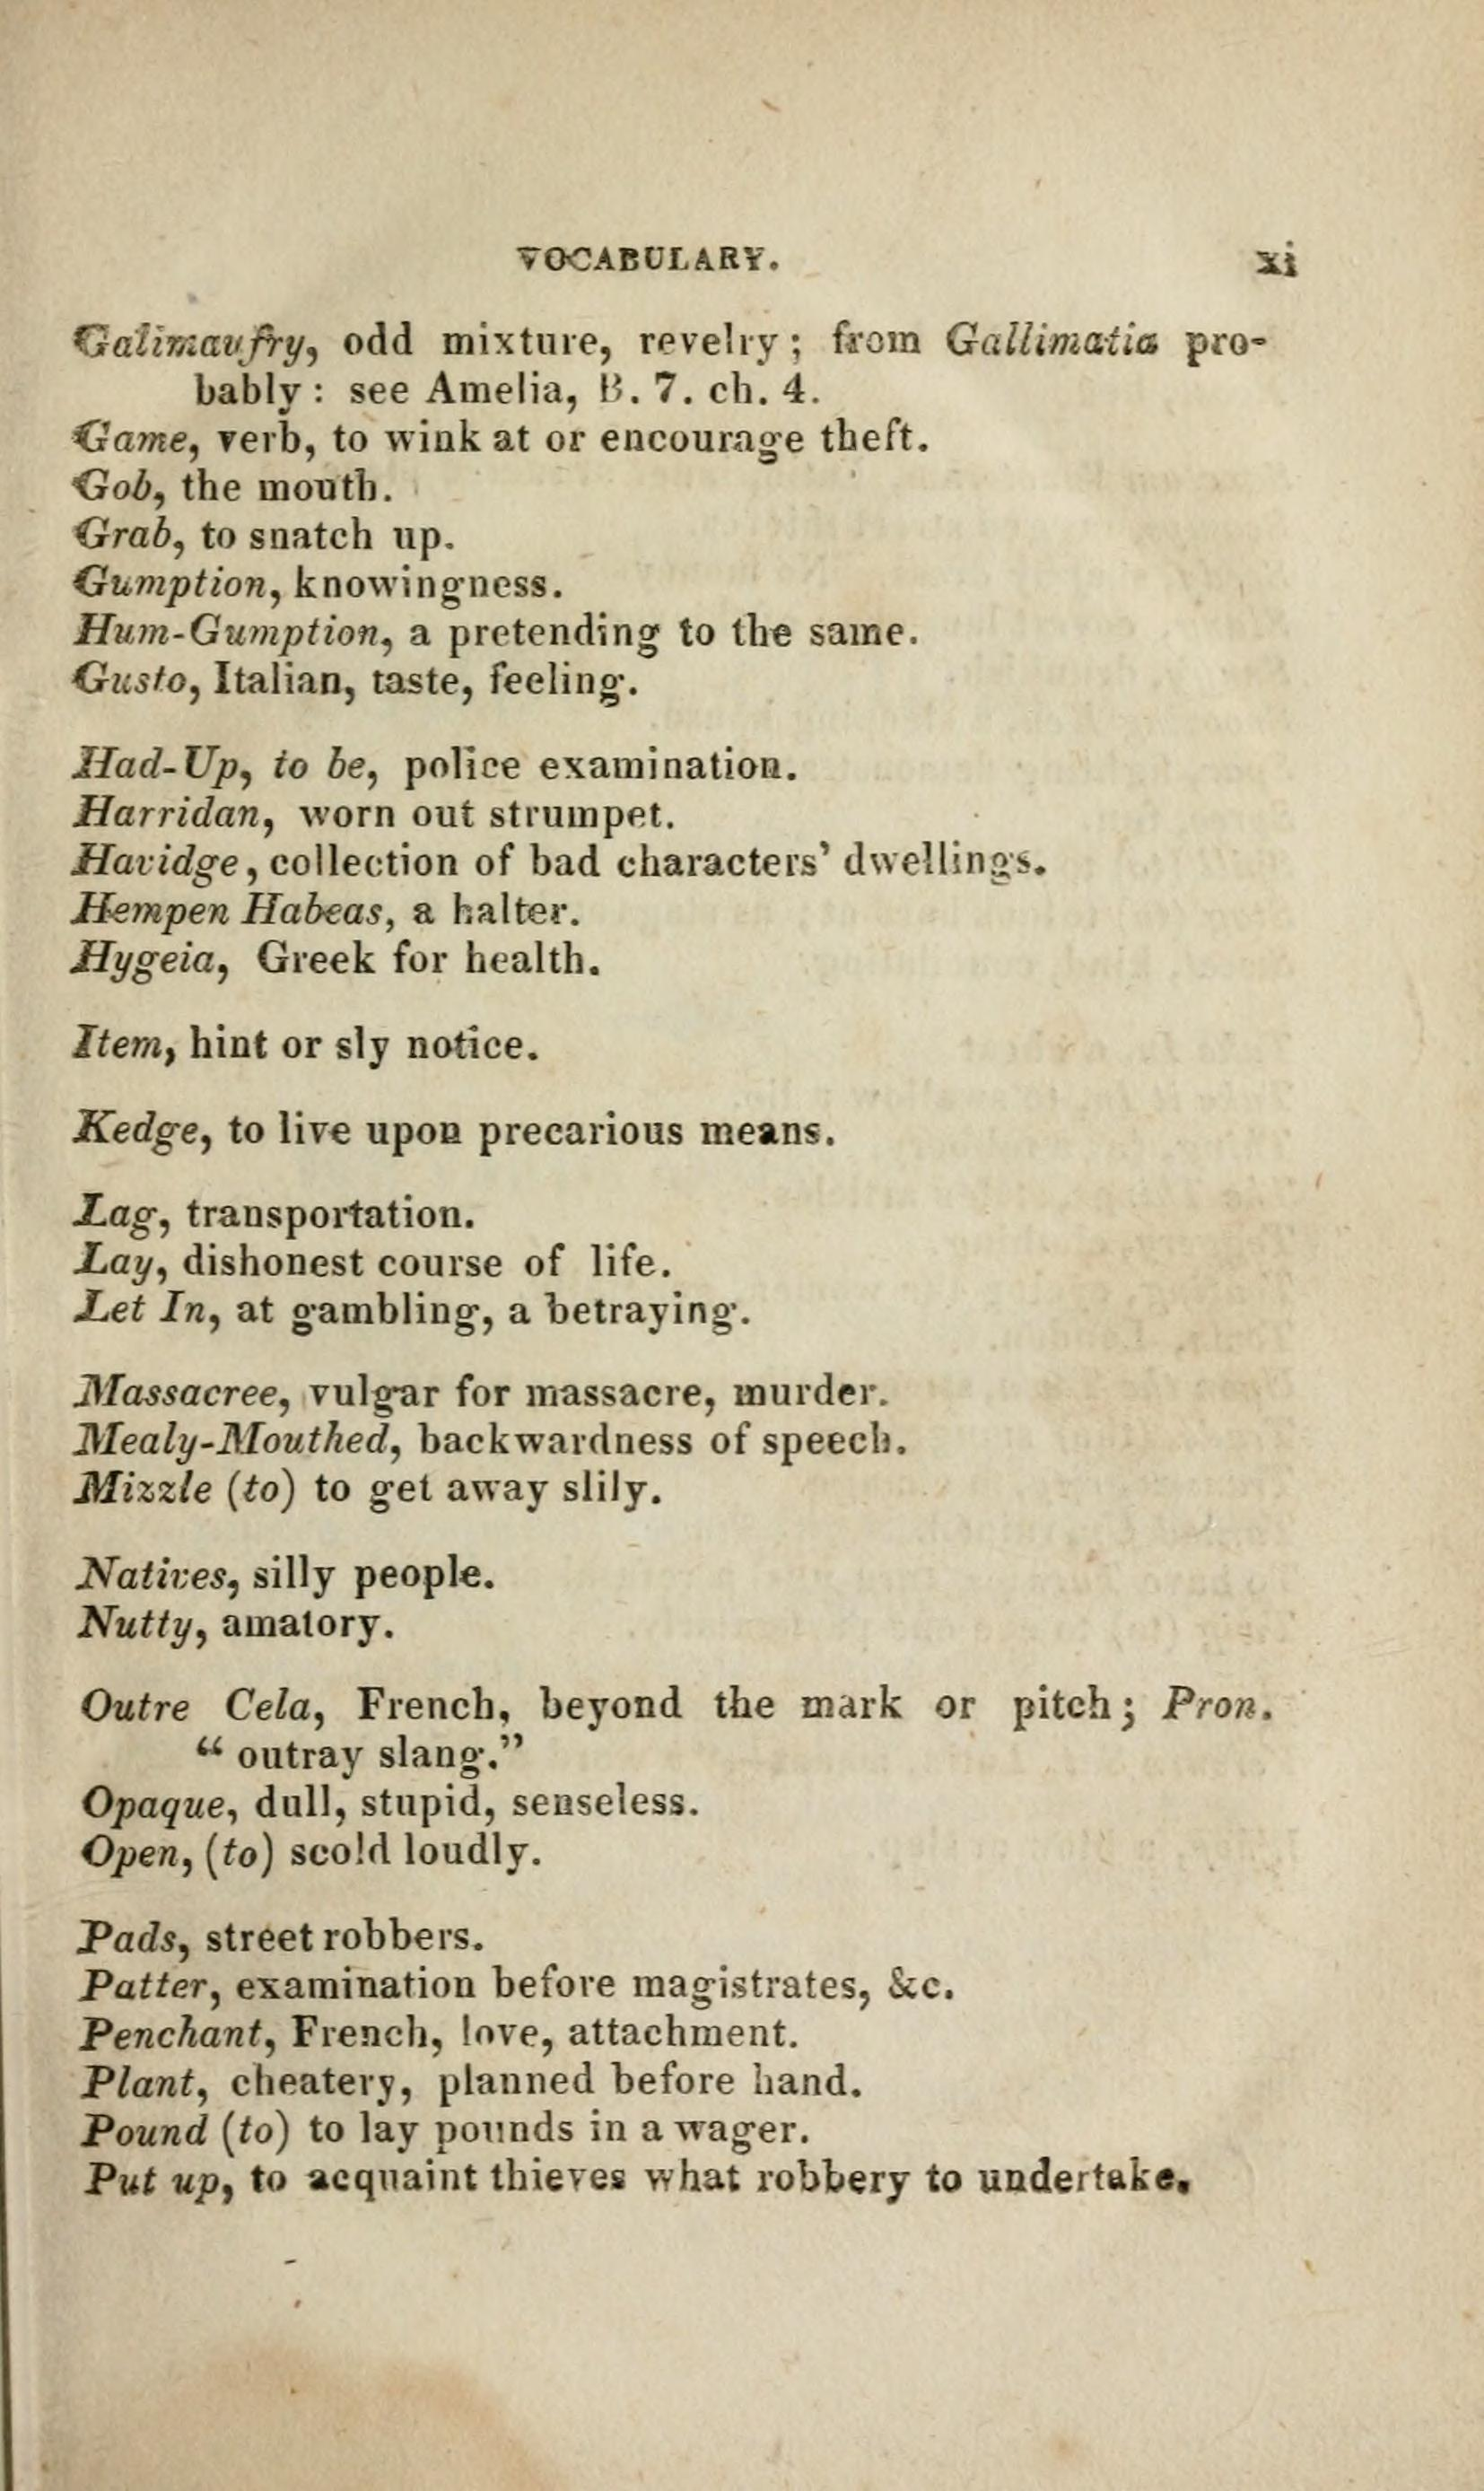 The London Guide and Stranger's Safeguard against the Cheats, Swindlers, and Pickpockets (1819)